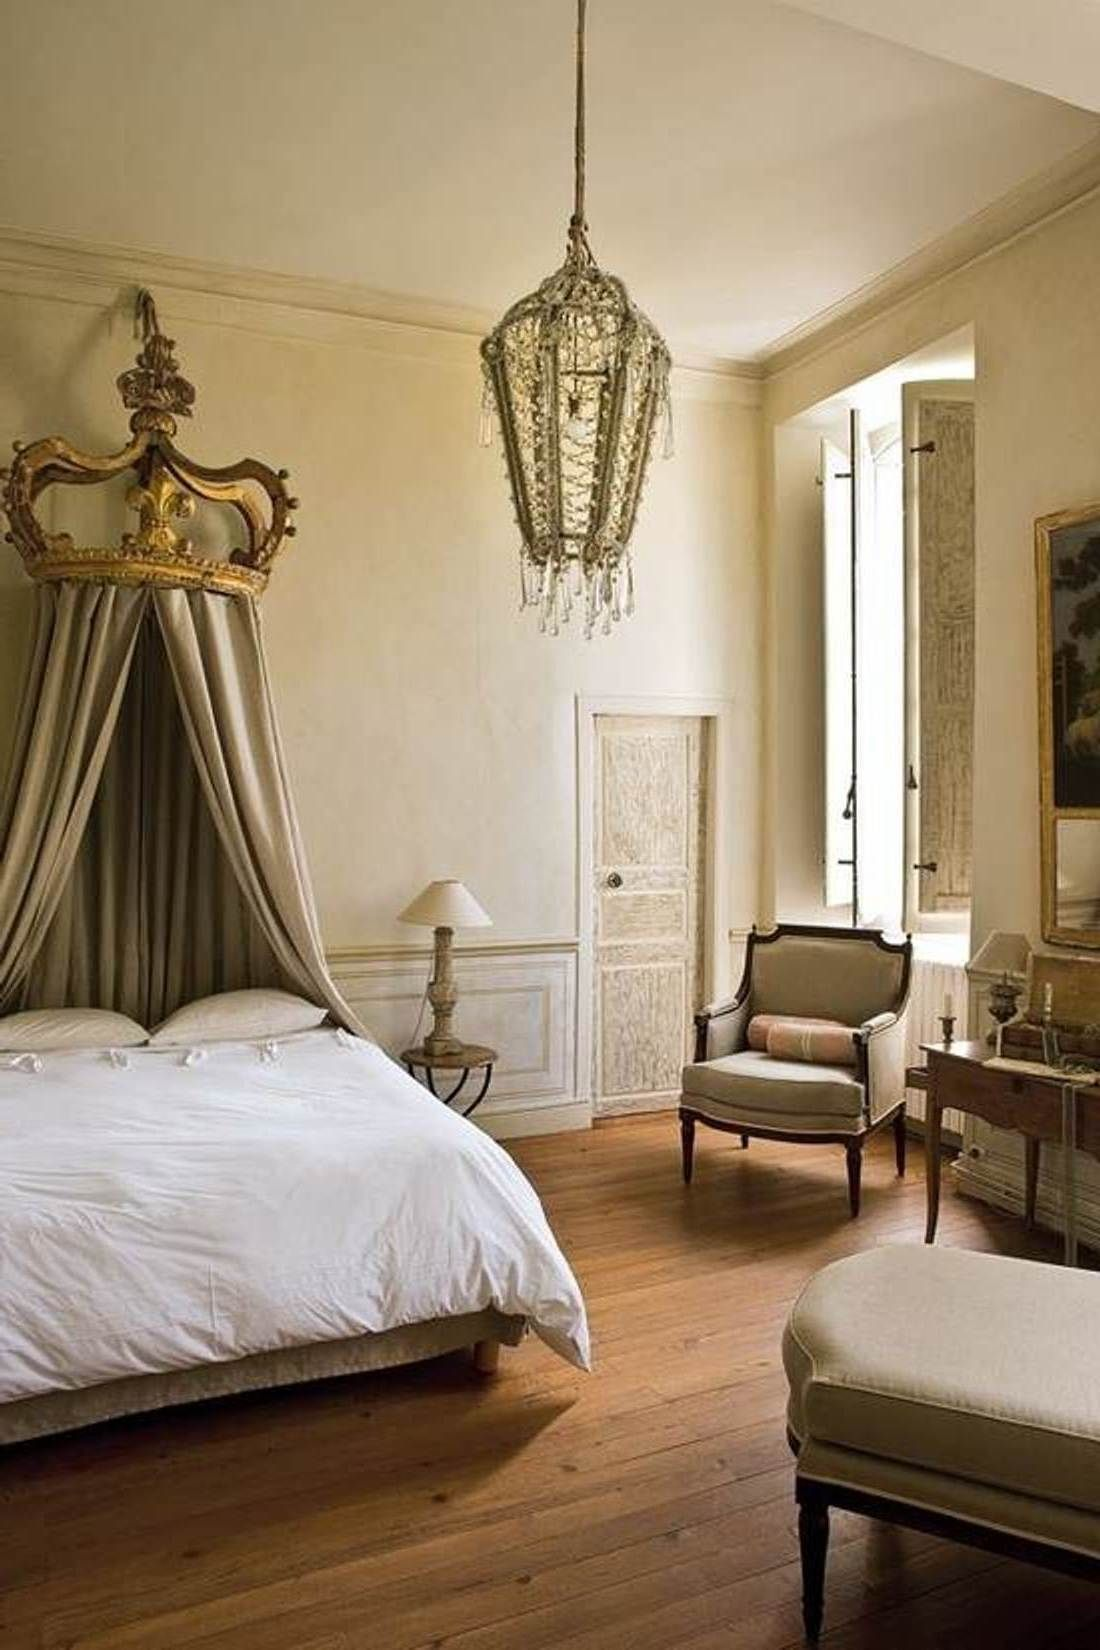 Romantic French Decorating Style For Bedrooms Home Decor Bedroom